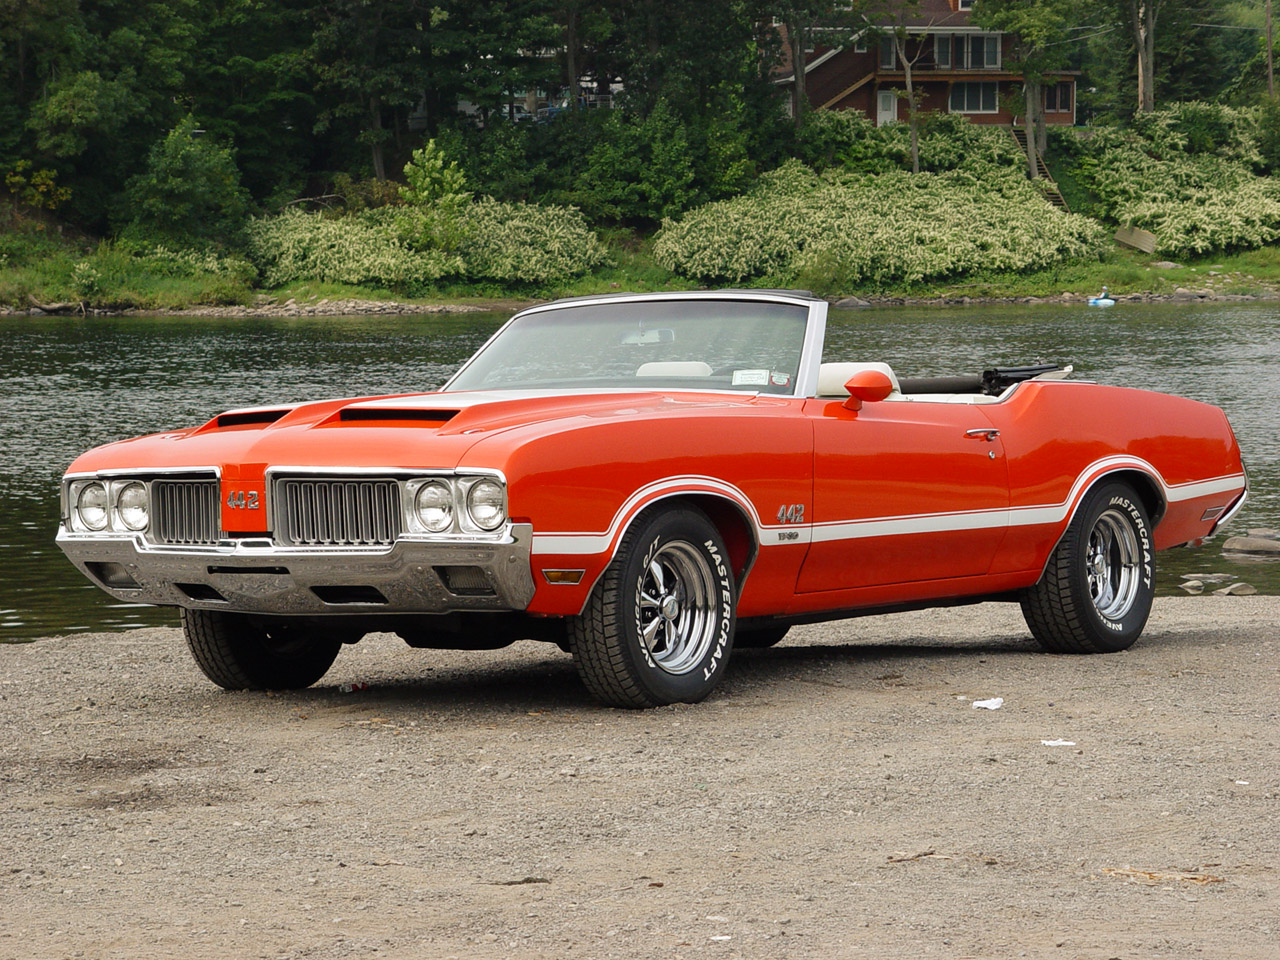 Oldsmobile Cutlass 442 W-30. MotoBurg 3